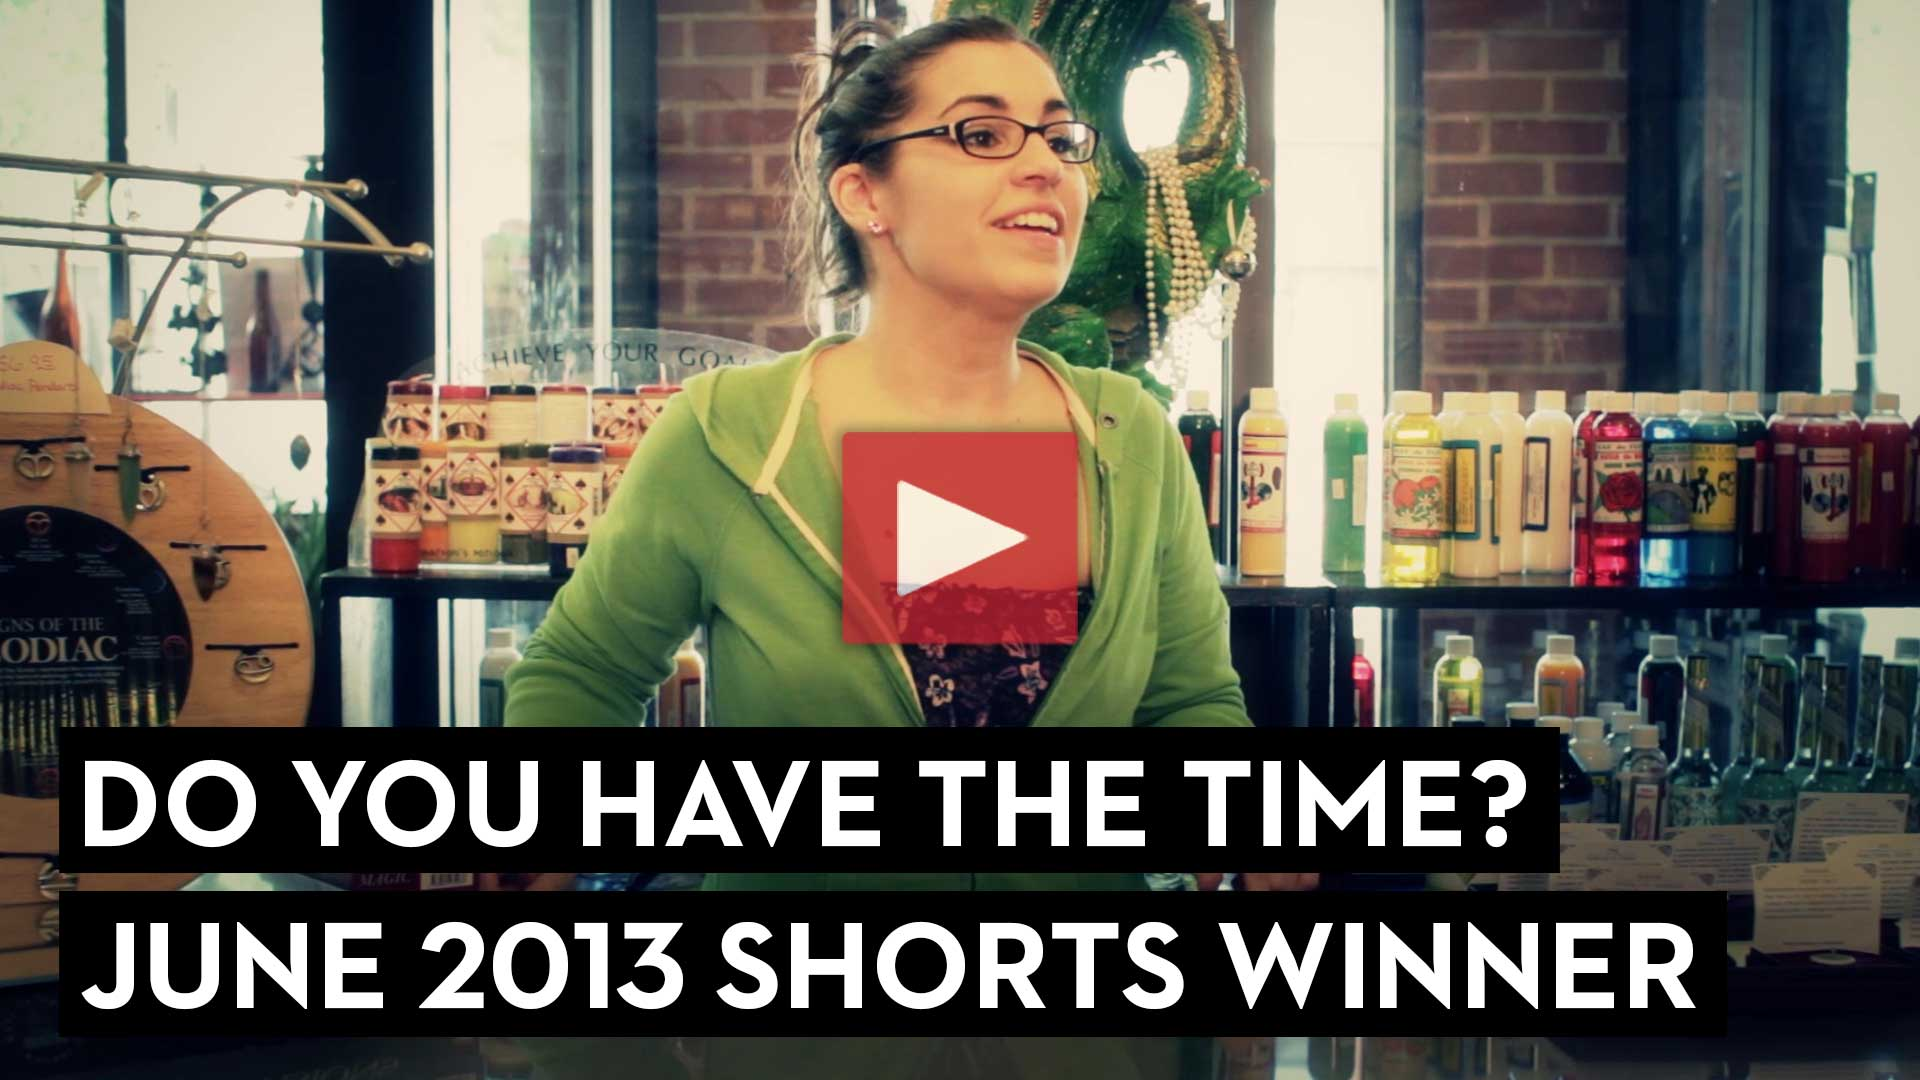 Do You Have the Time? – Second City Shorts Winner 6/13